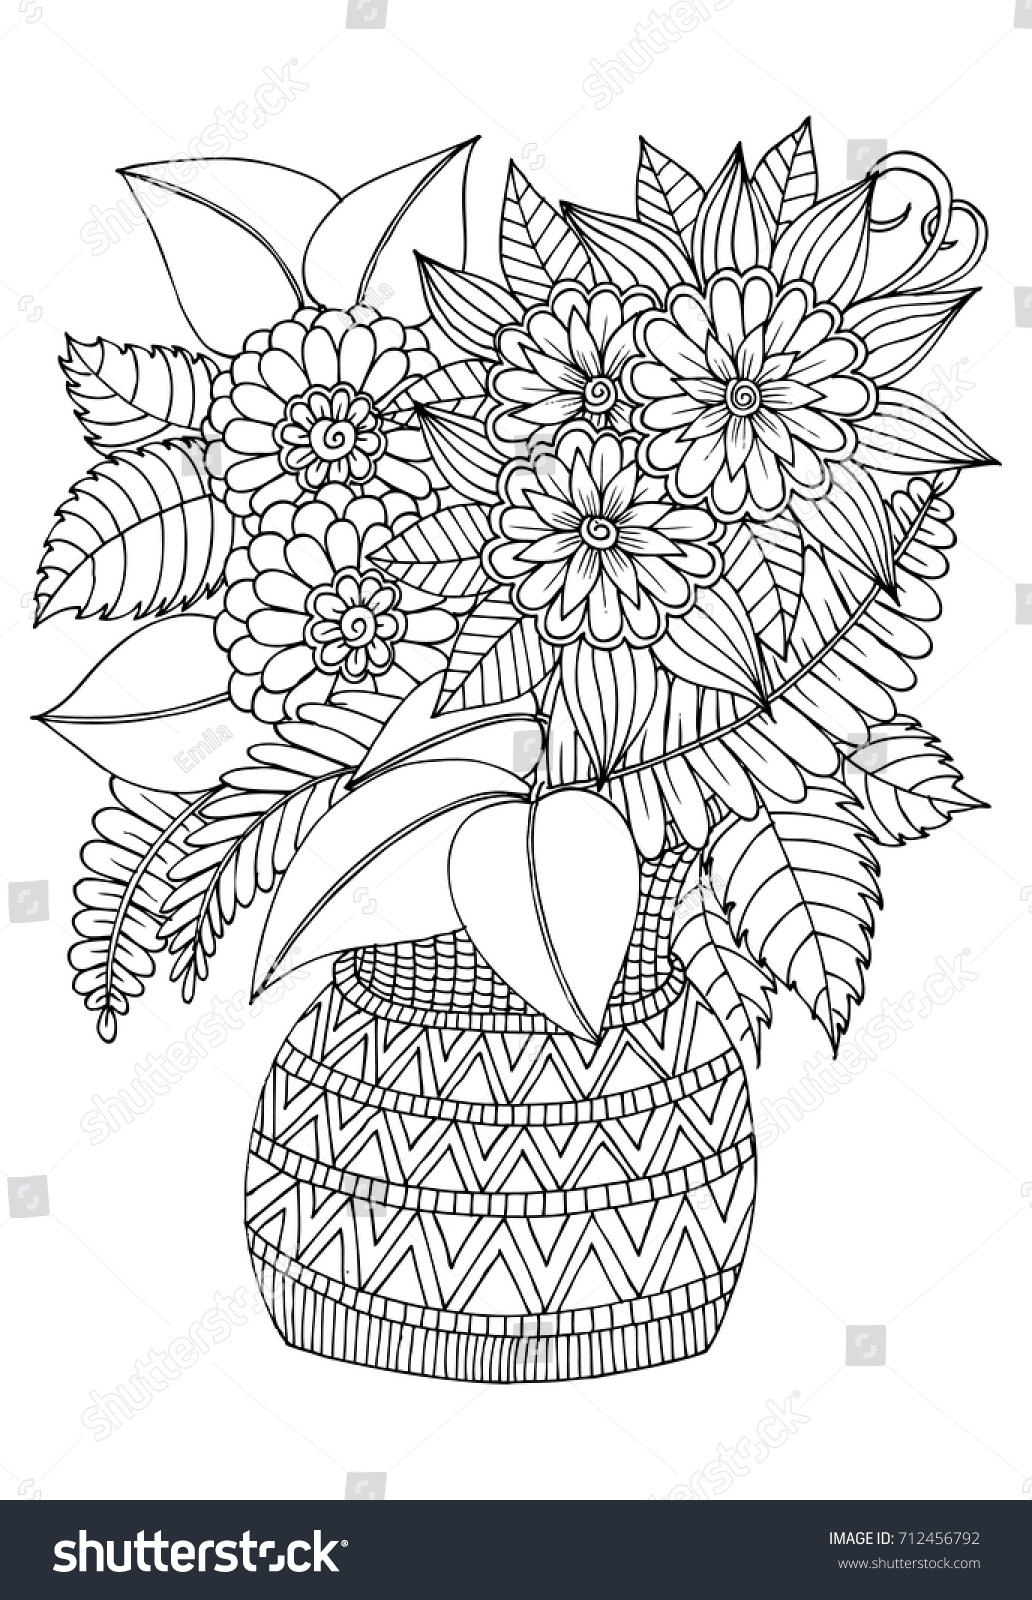 Flower Bouquet Vase Black White Drawing Stock Vector (Royalty Free ...